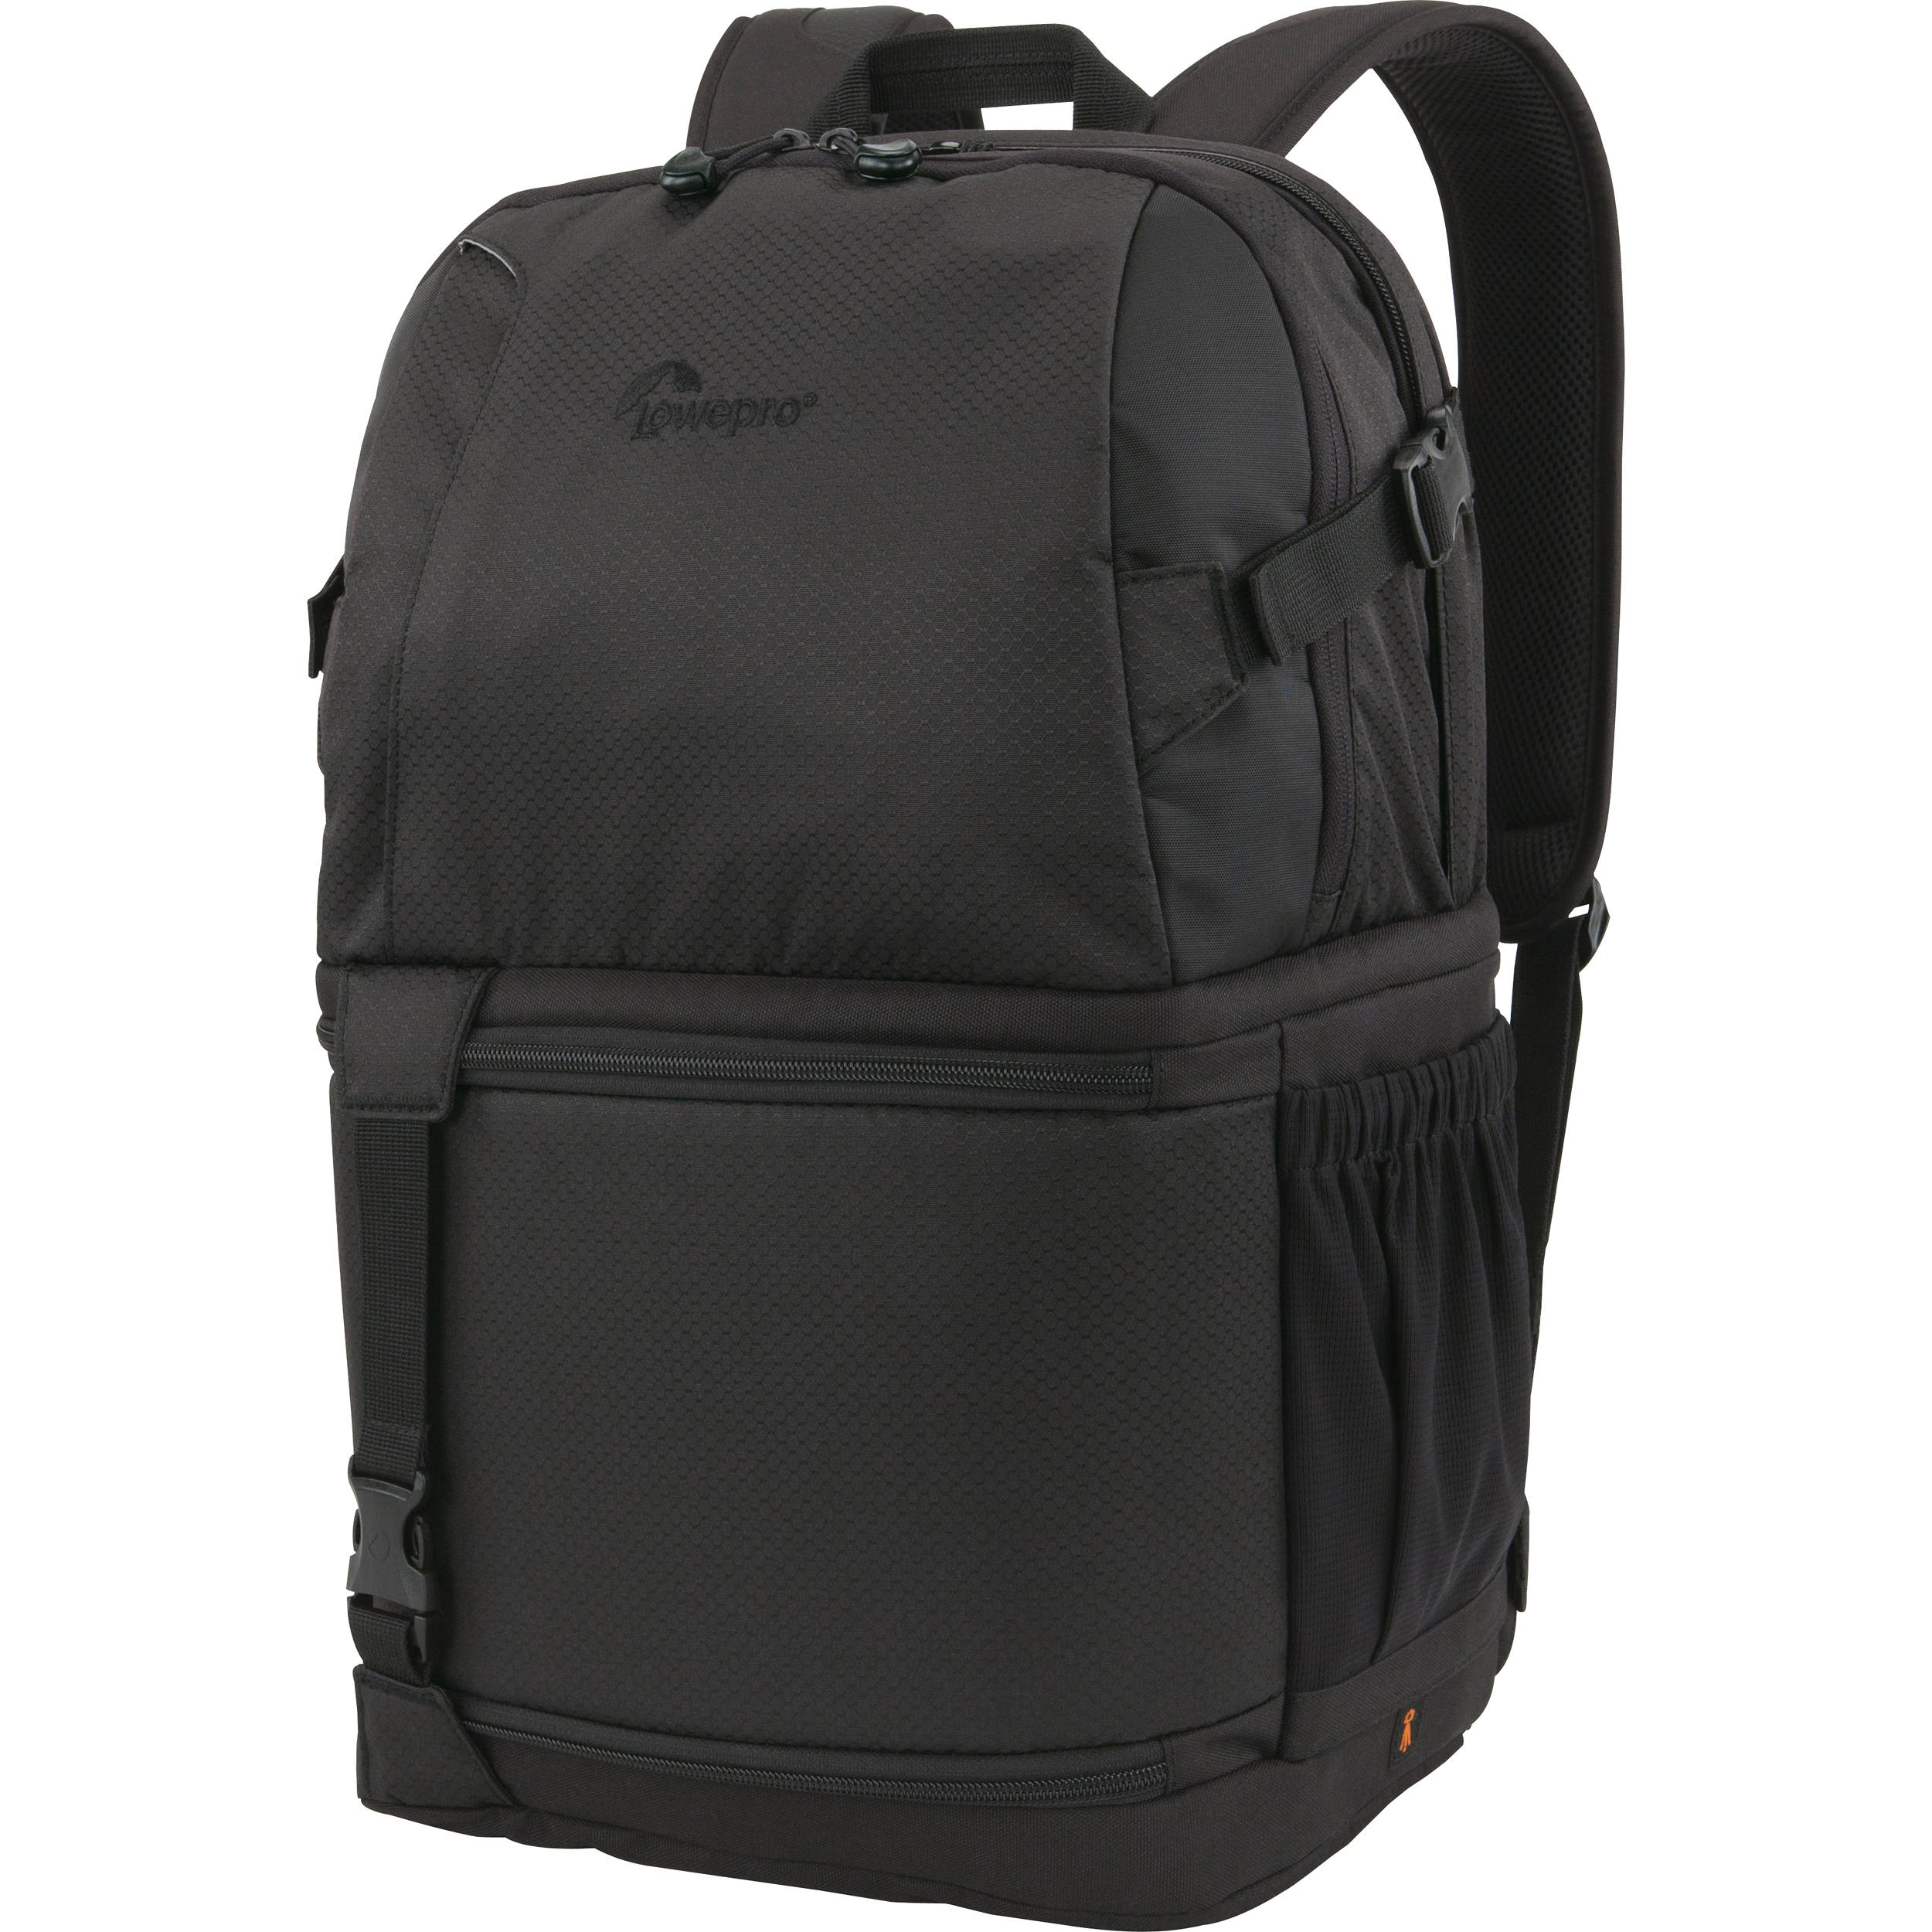 Lowepro DSLR Video Fastpack 350 AW (Black) LP36394 B&H Photo